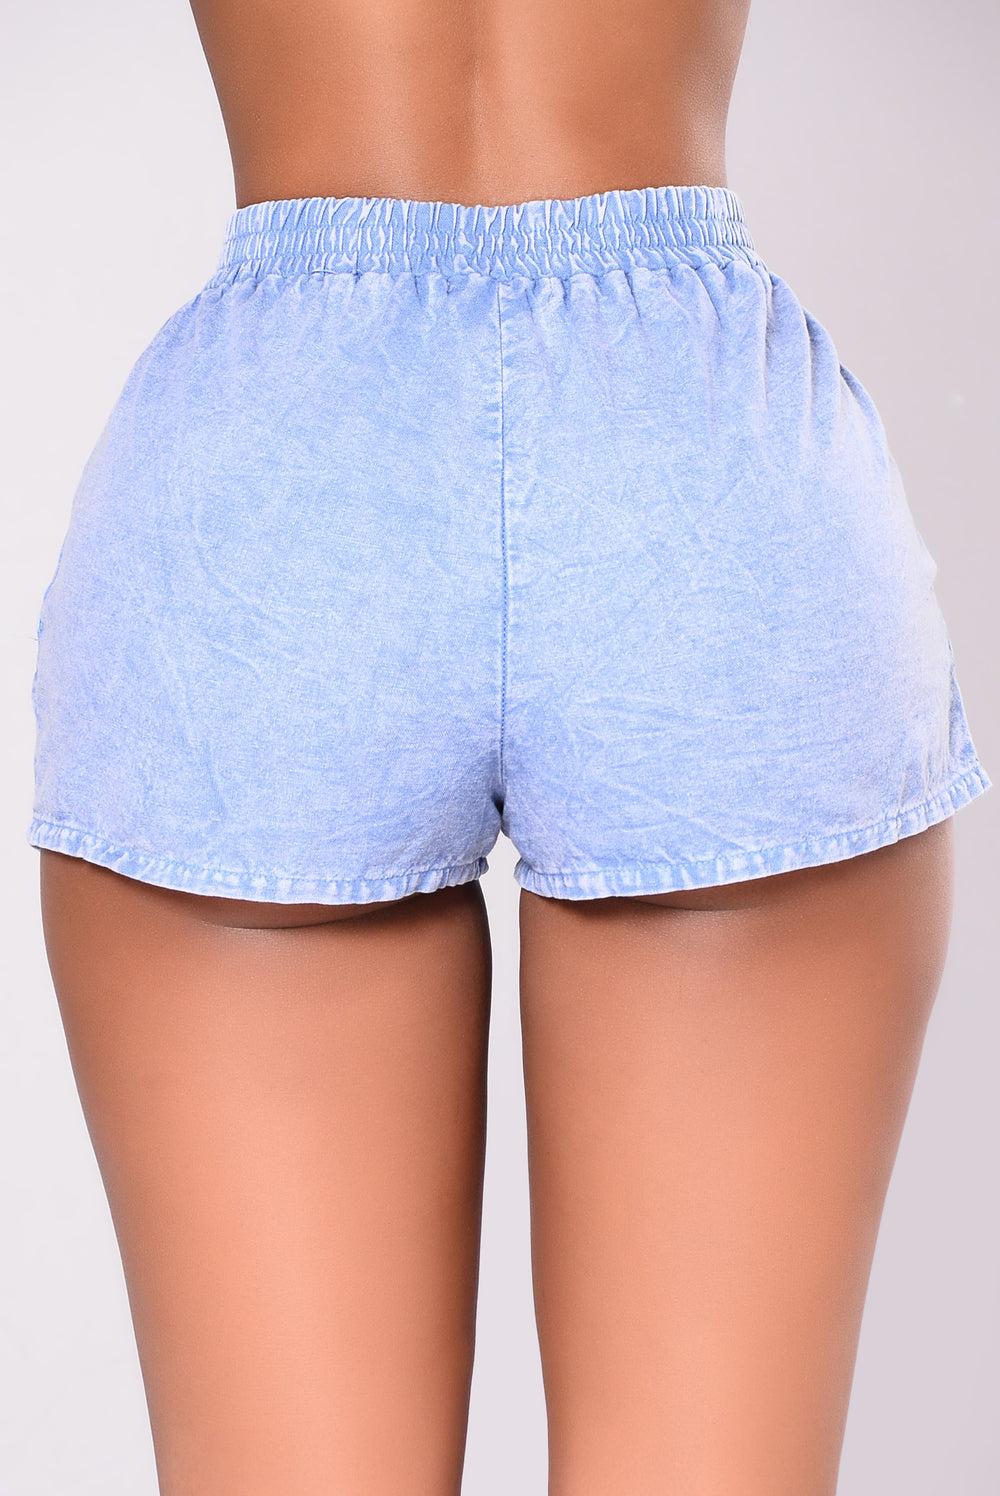 Down For Life Shorts - Blue